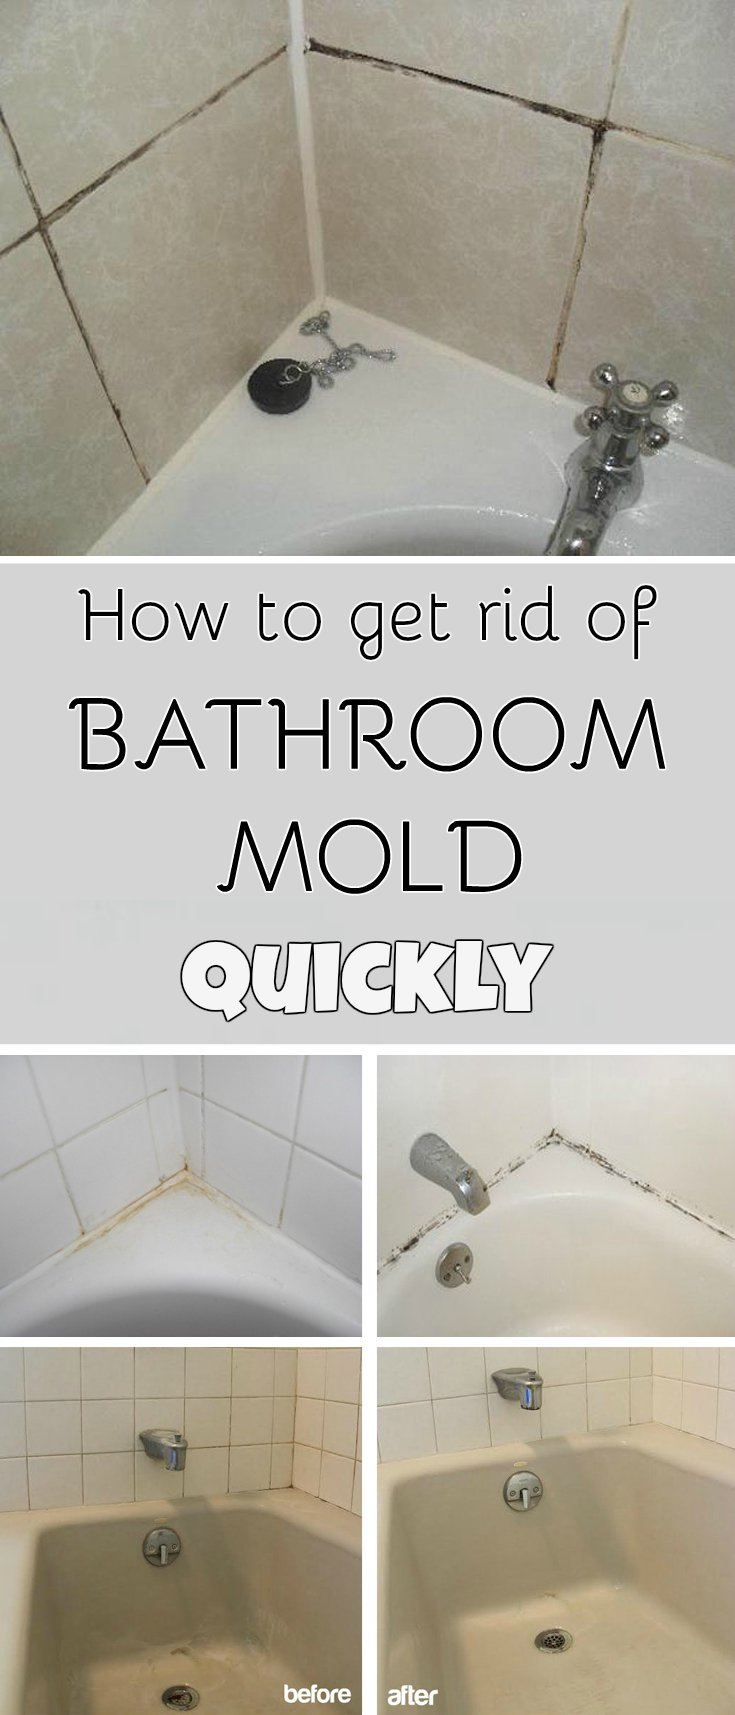 How to get rid of bathroom mold quickly for How to clean mold off bathroom walls and ceiling